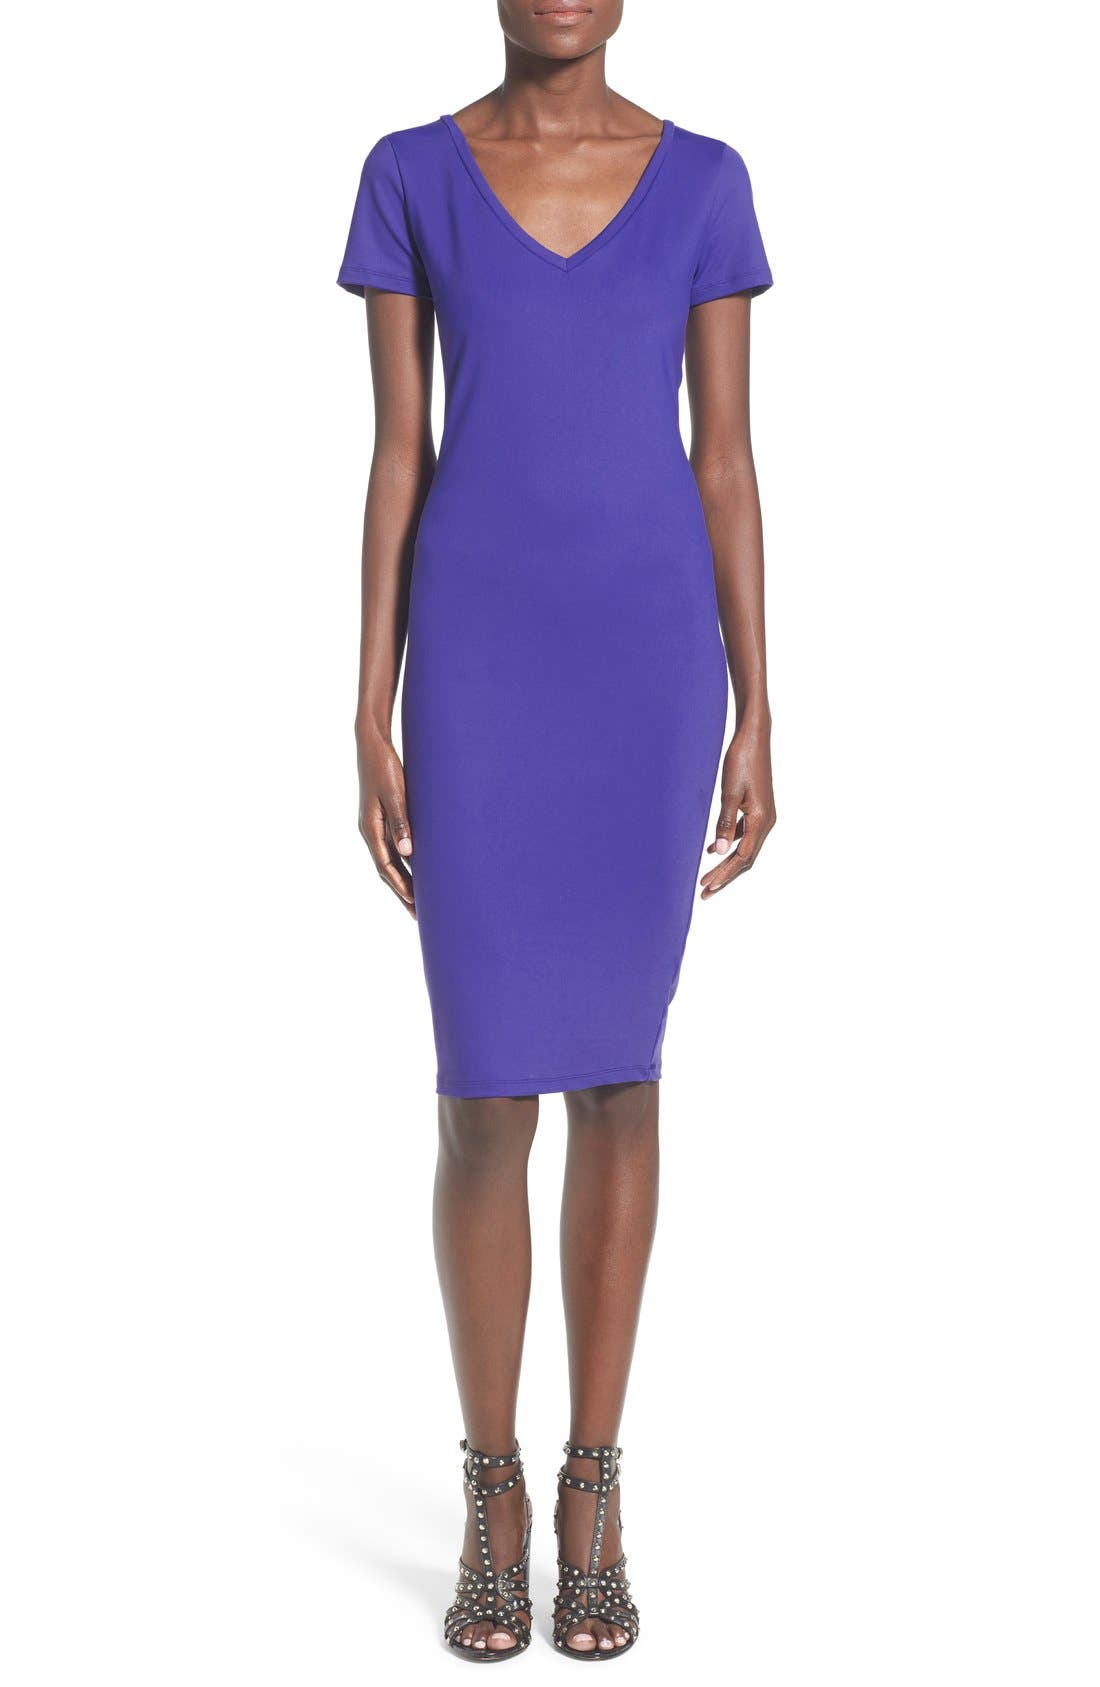 Alternate Image 1 Selected - Leith V-Neck Body-Con Dress